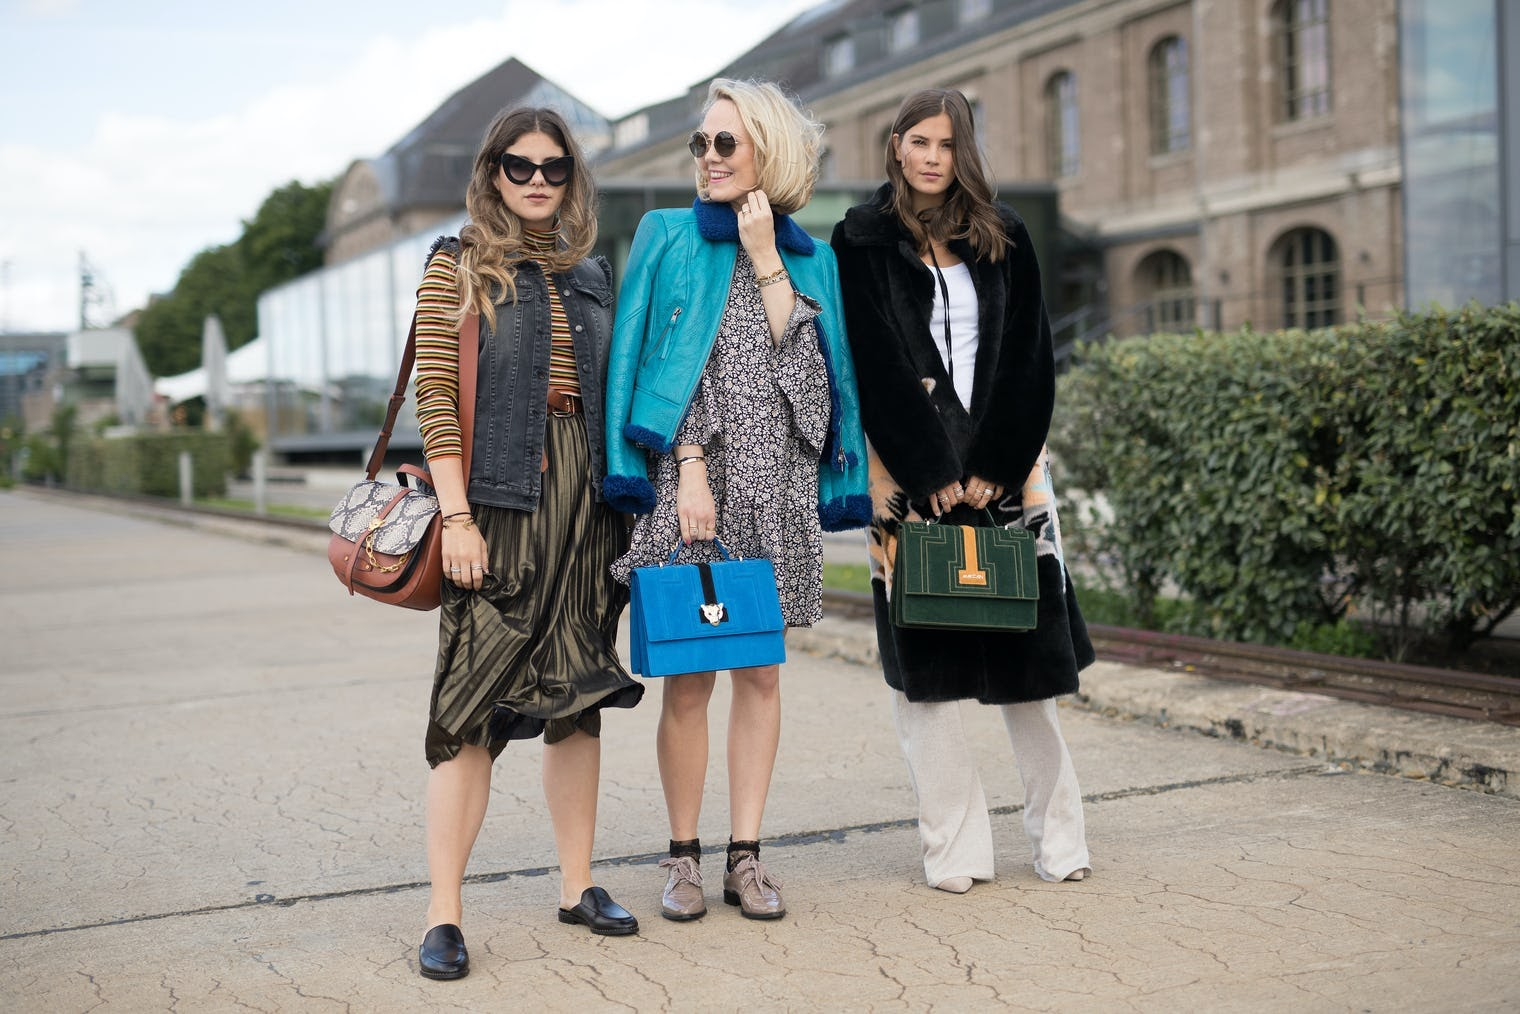 three professional women hang out together